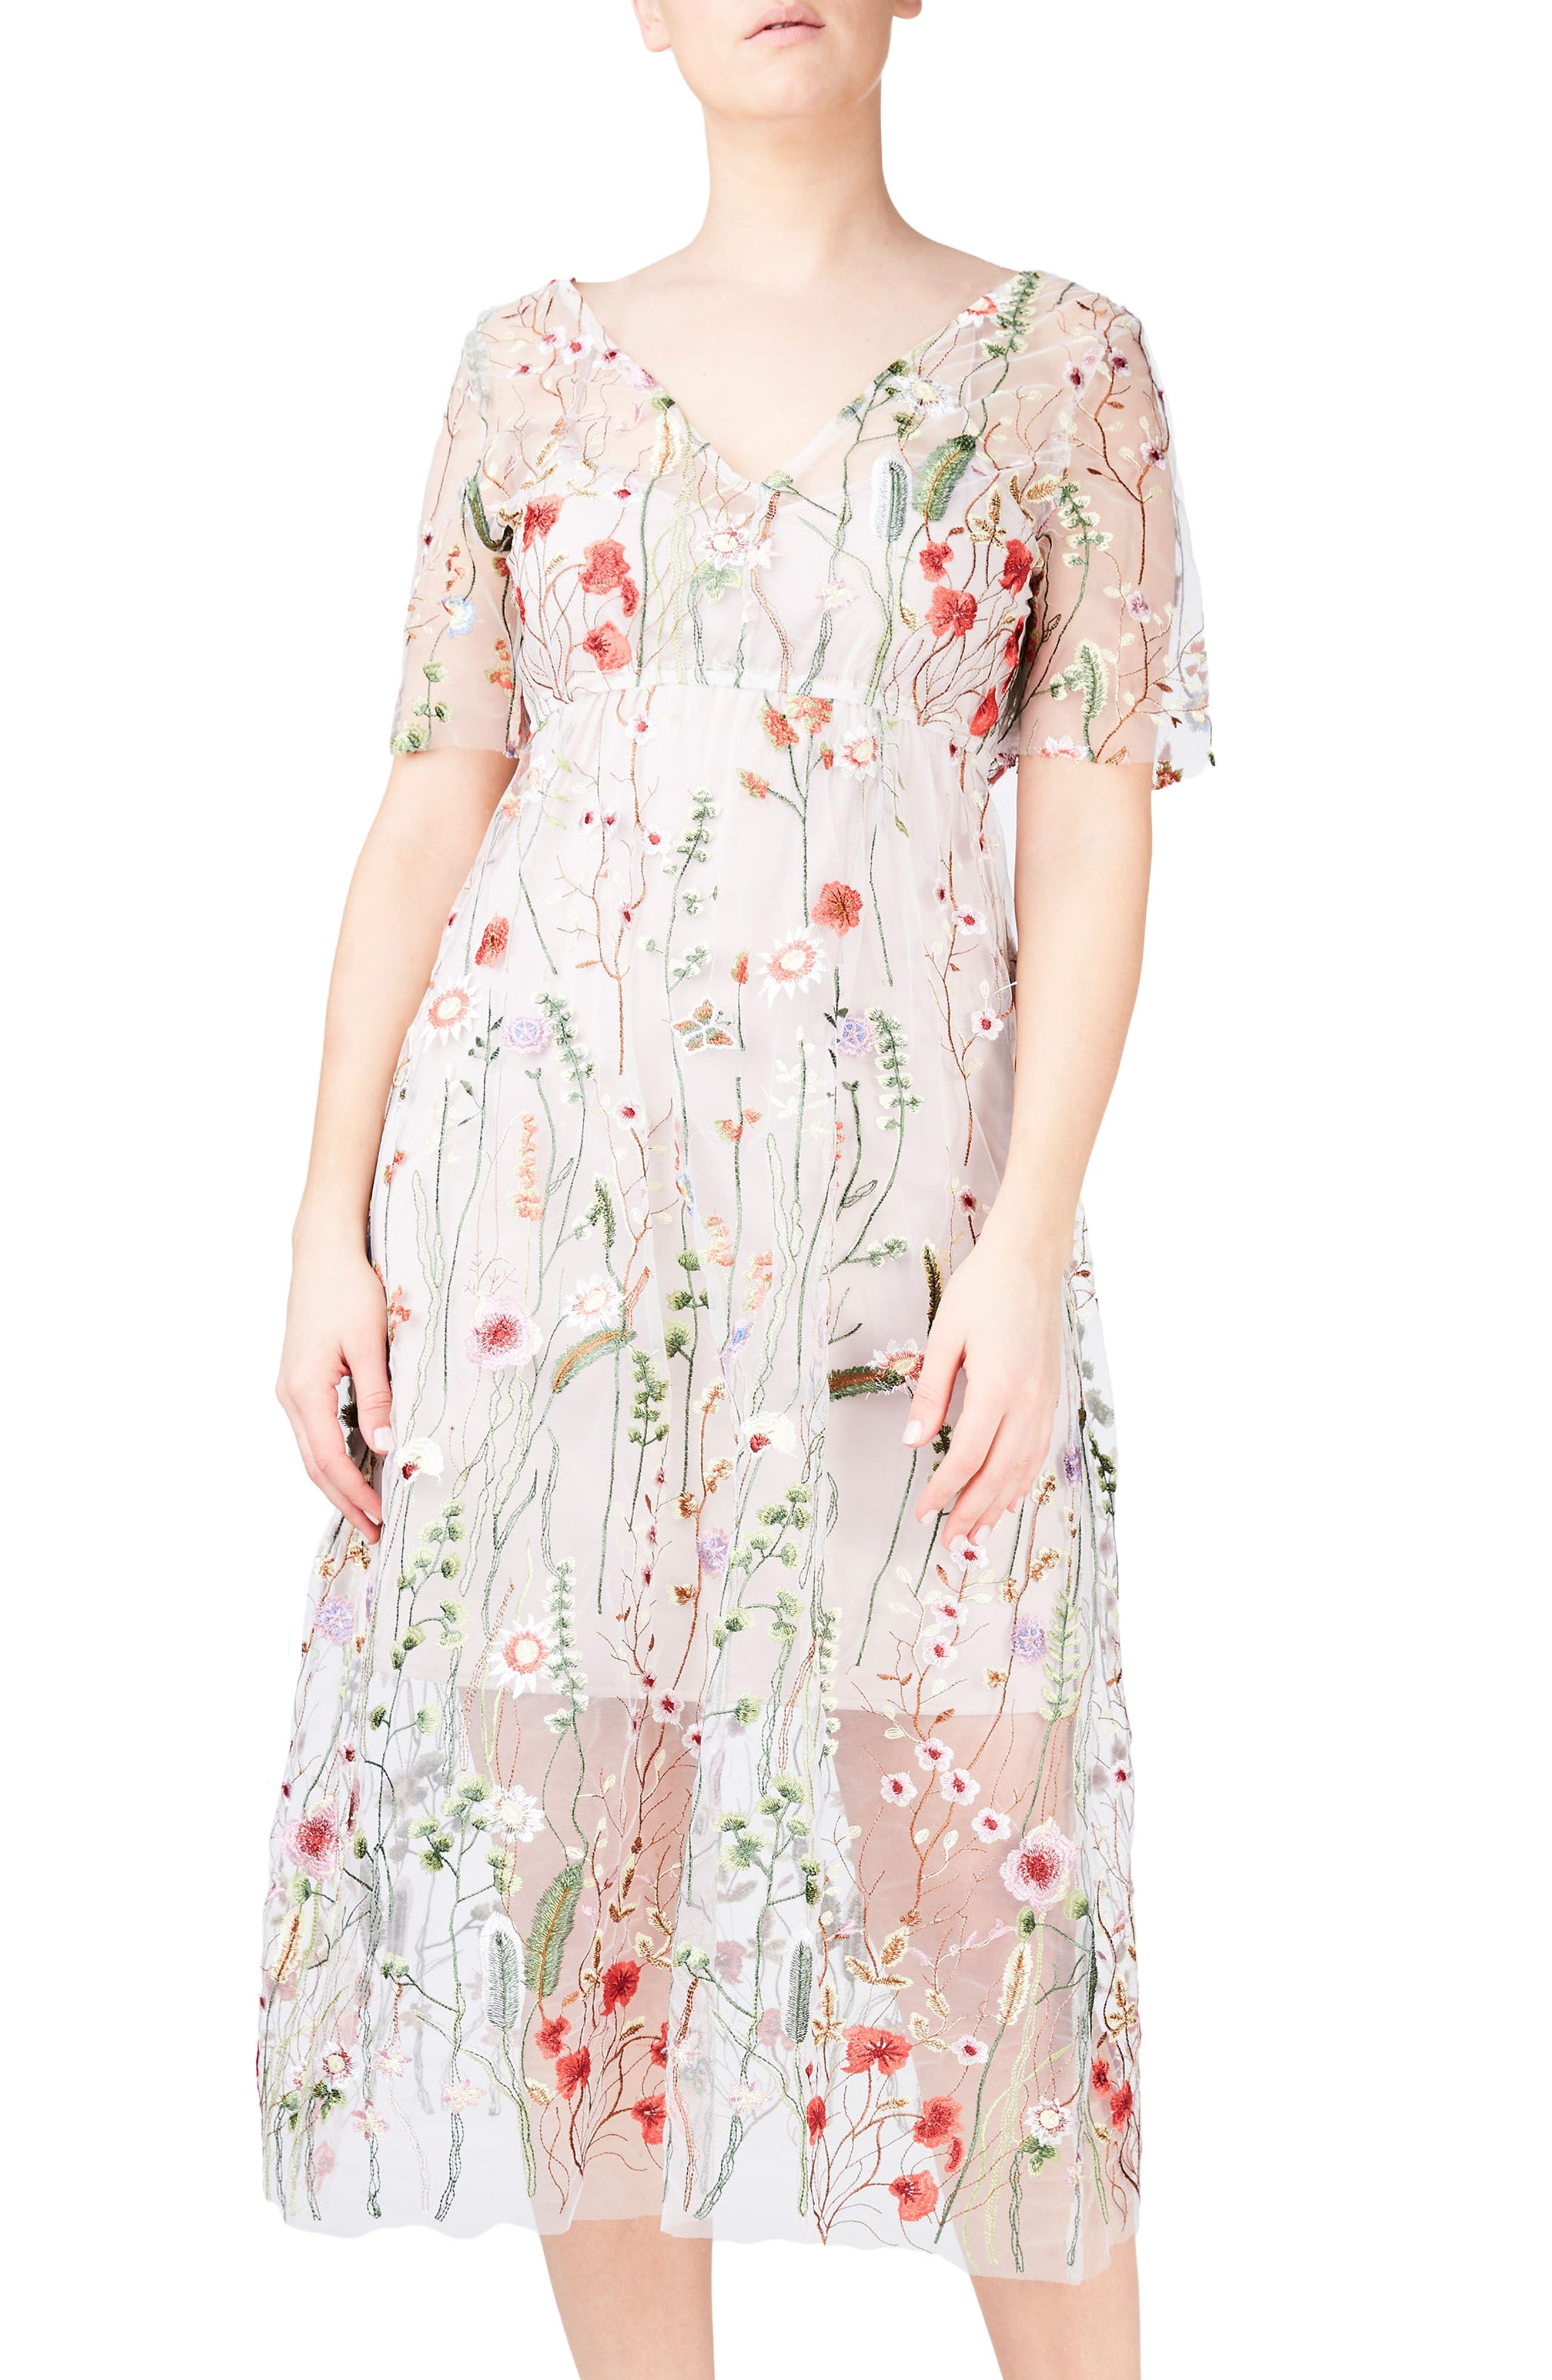 Alternate Image 1 Selected - ELVI Floral Embroidered Floral Net Dress (Plus Size)